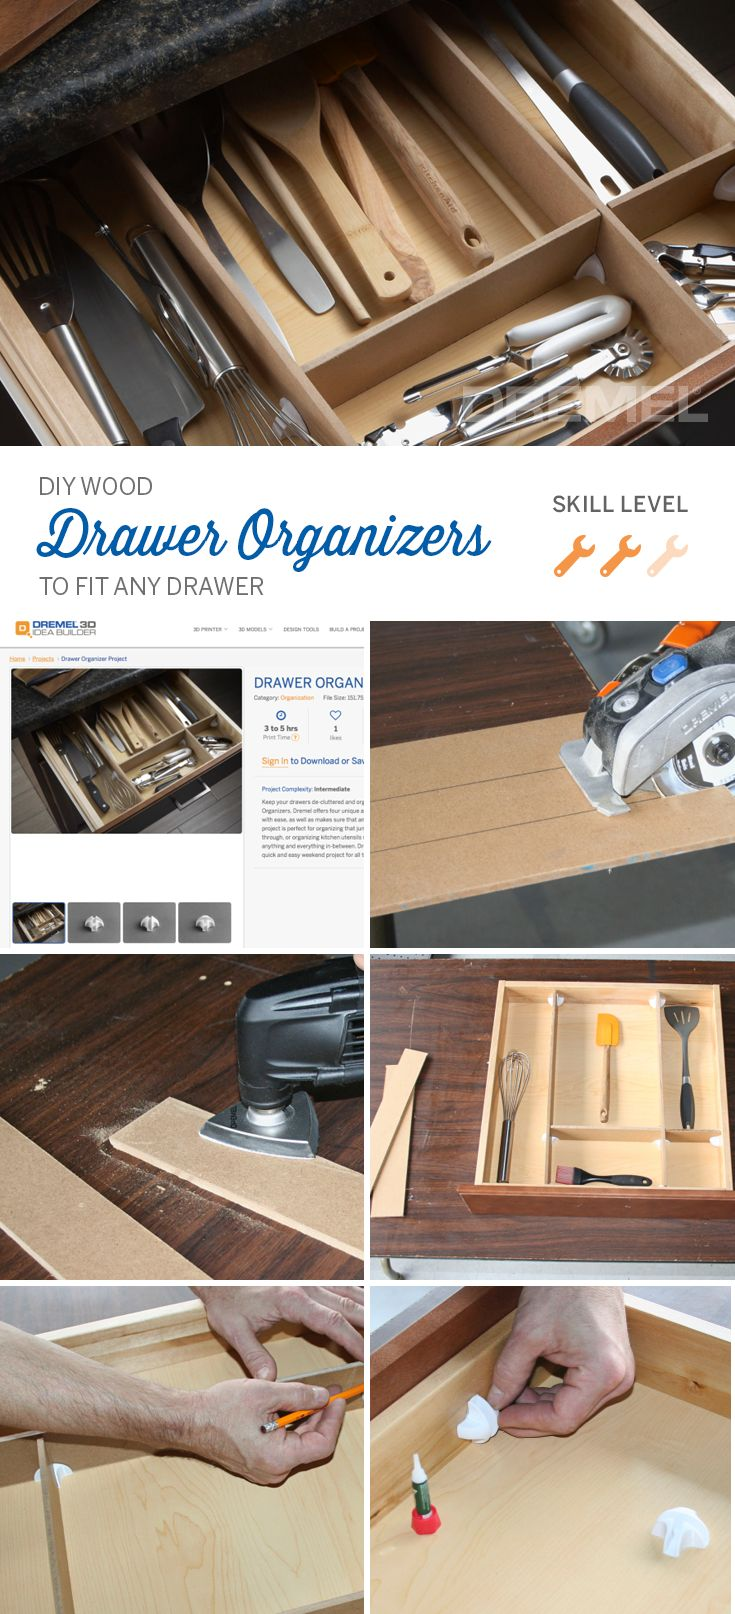 The best part about making your own DIY drawer organizers is you can make them fit ANY drawer.